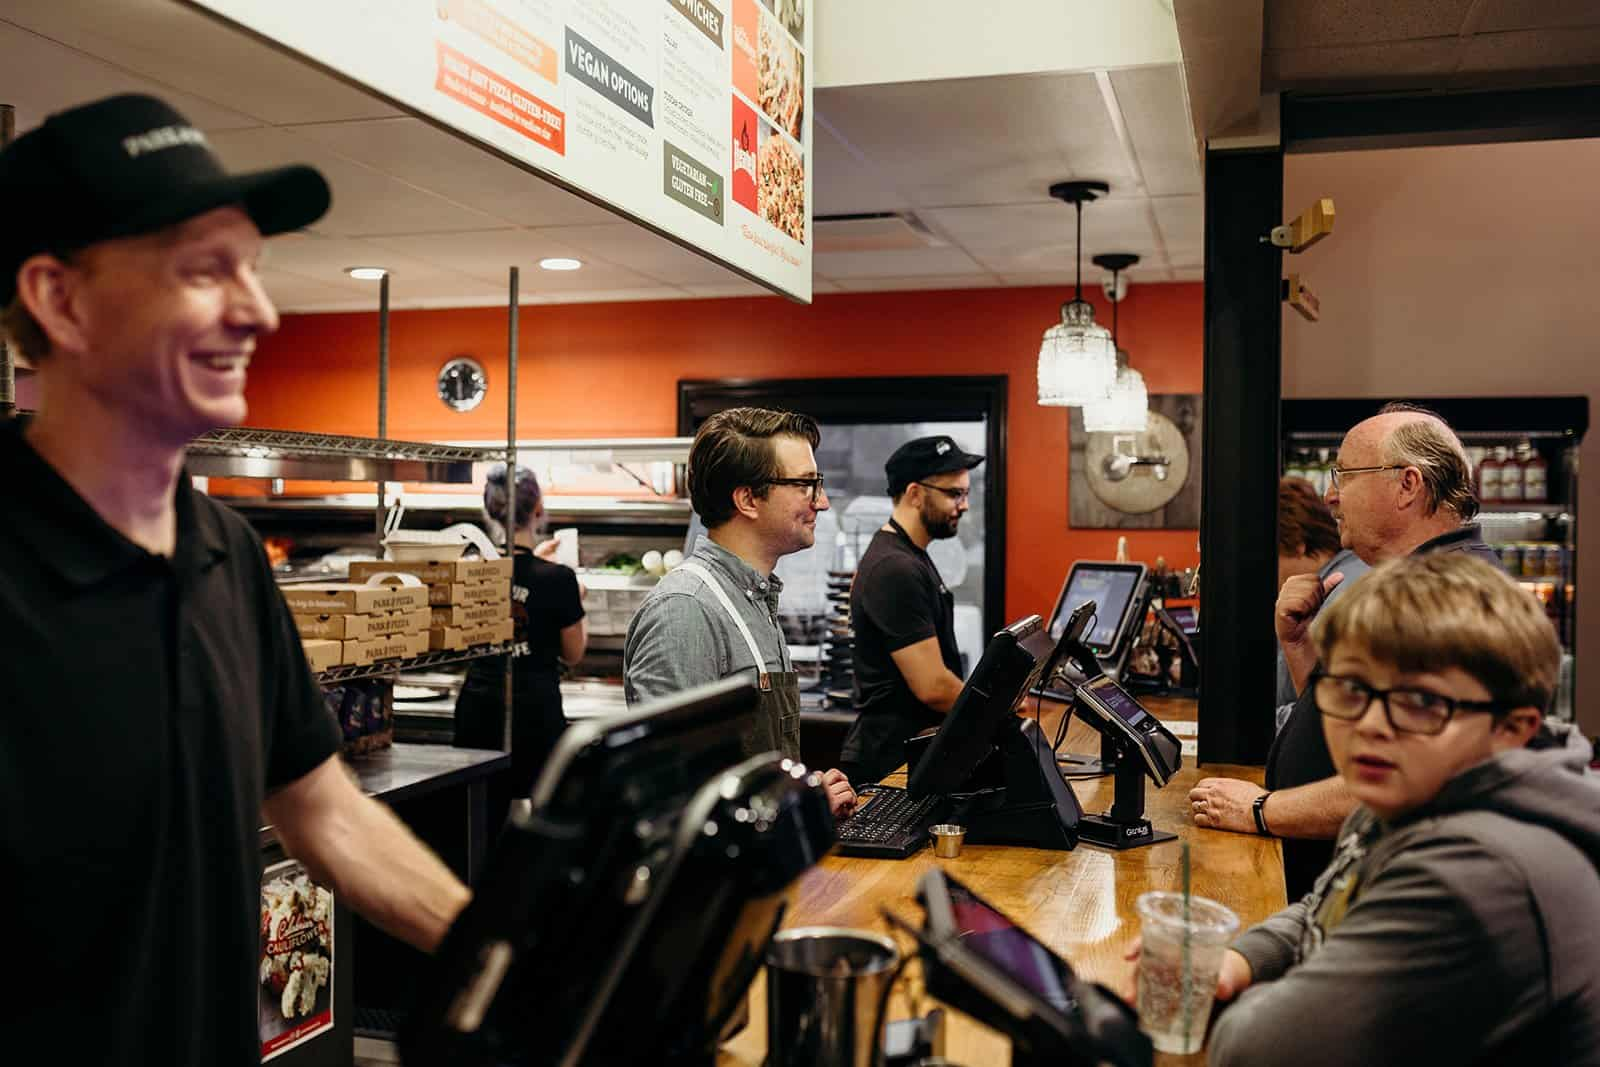 Park Street Pizza / Commercial Shoot 343